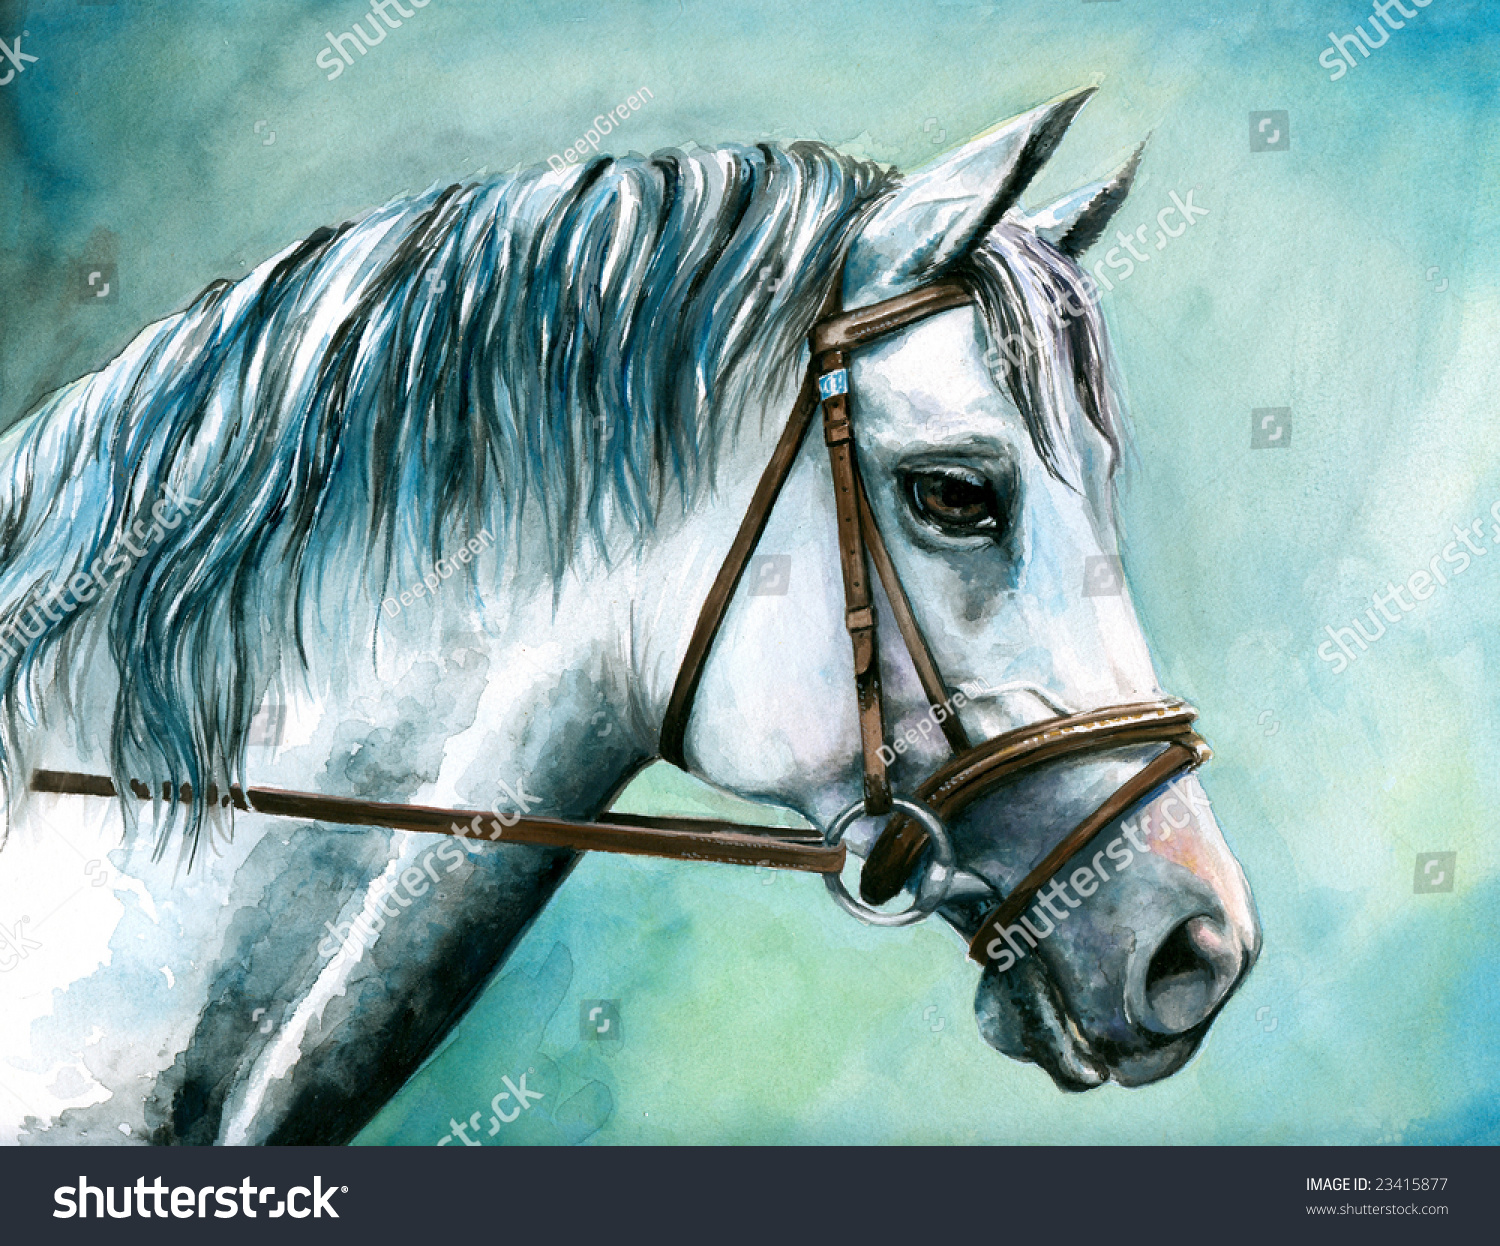 Portrait Of White Horse Watercolor Painted. Stock Photo ...